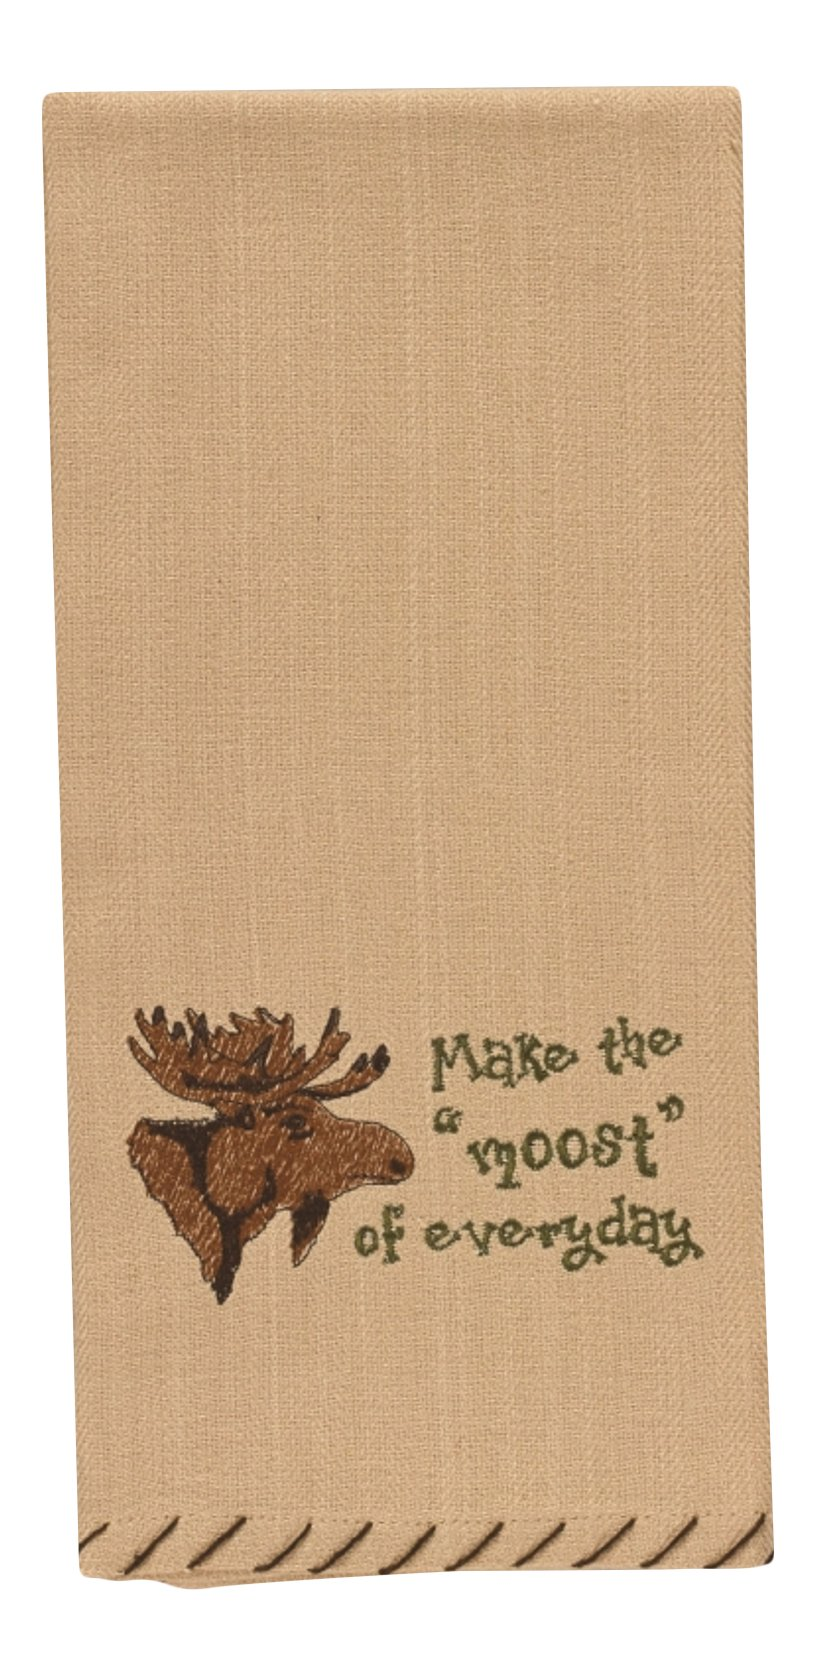 Park Designs Make The Moost Of Every Day Moose Head Embroidered Kitchen Dish Towel 28 Inch